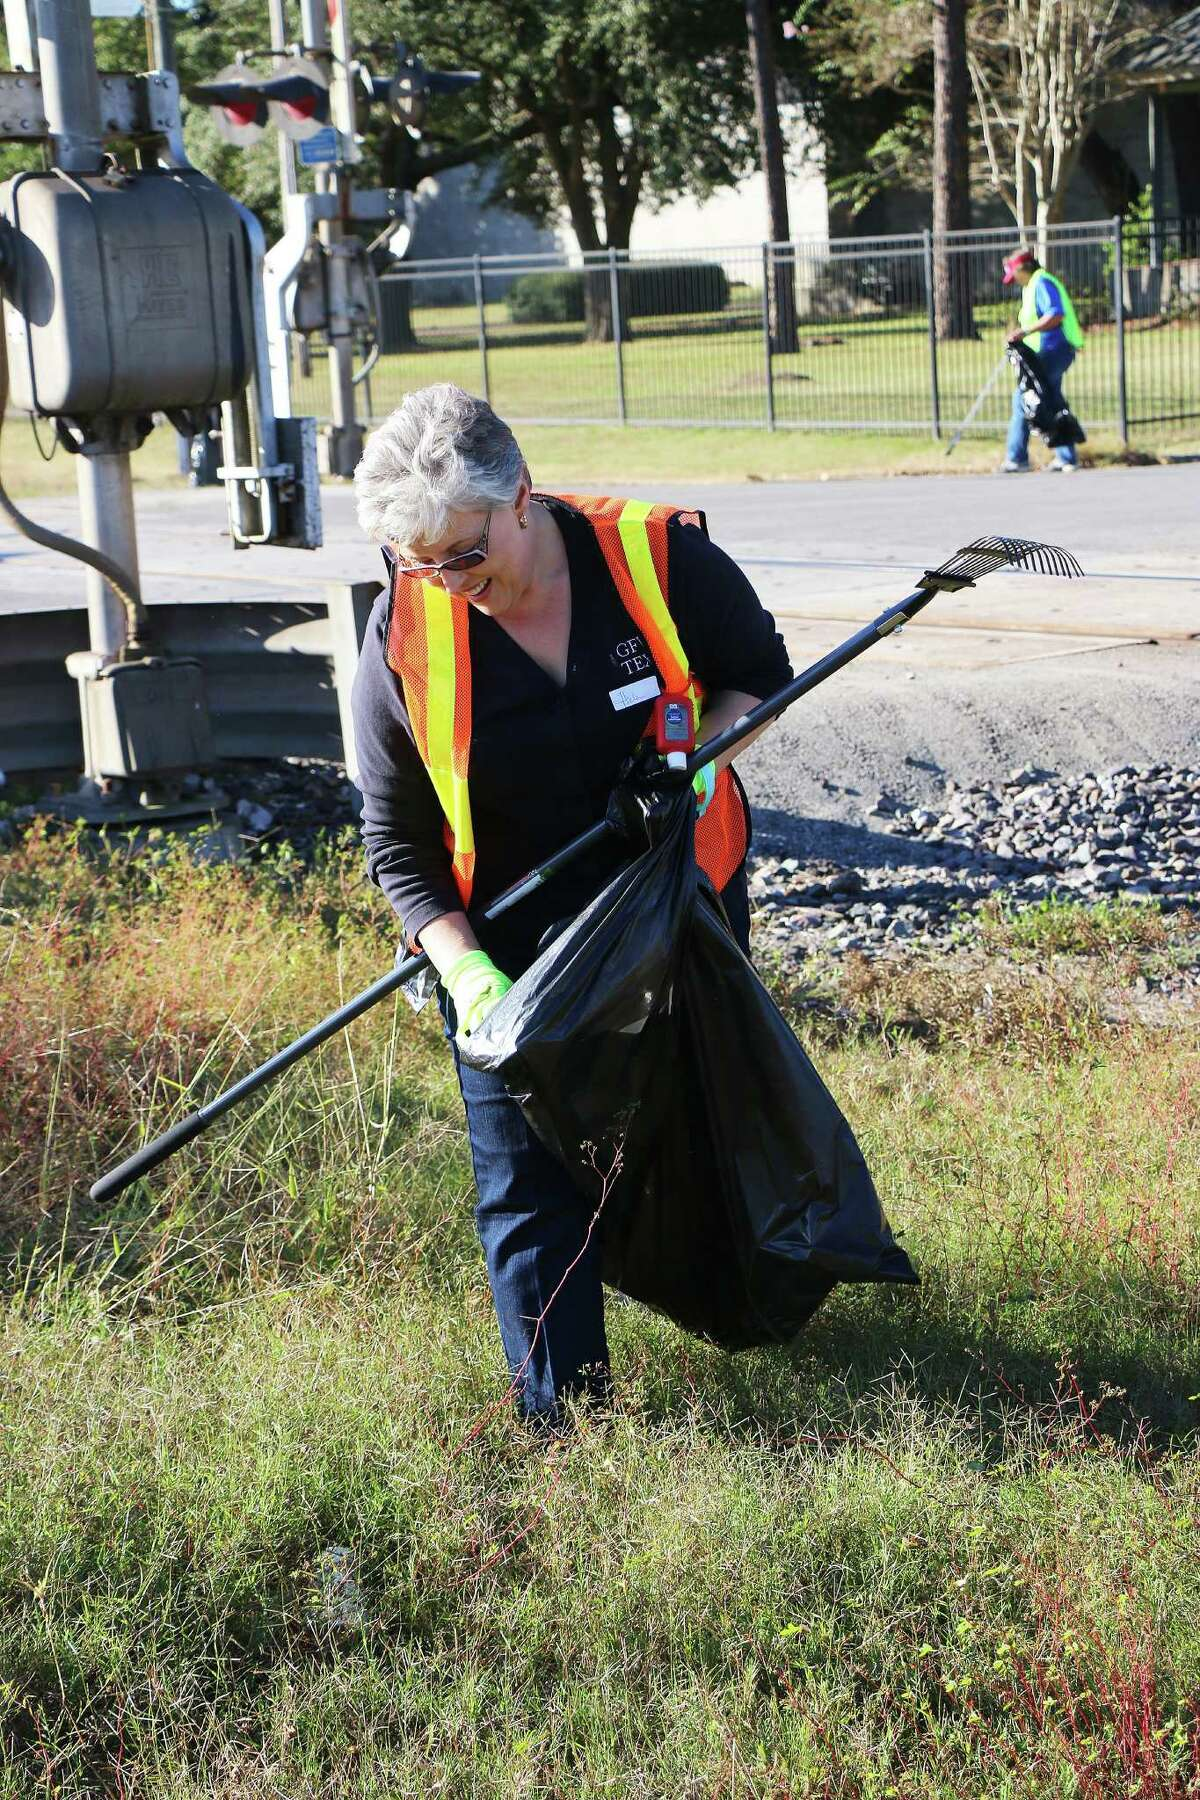 Liberty Woman's Club president Helen Lamberth led her club to a Pickup and Pitch In cleanup event on Tuesday. The volunteers collected trash along MLK and Texas.